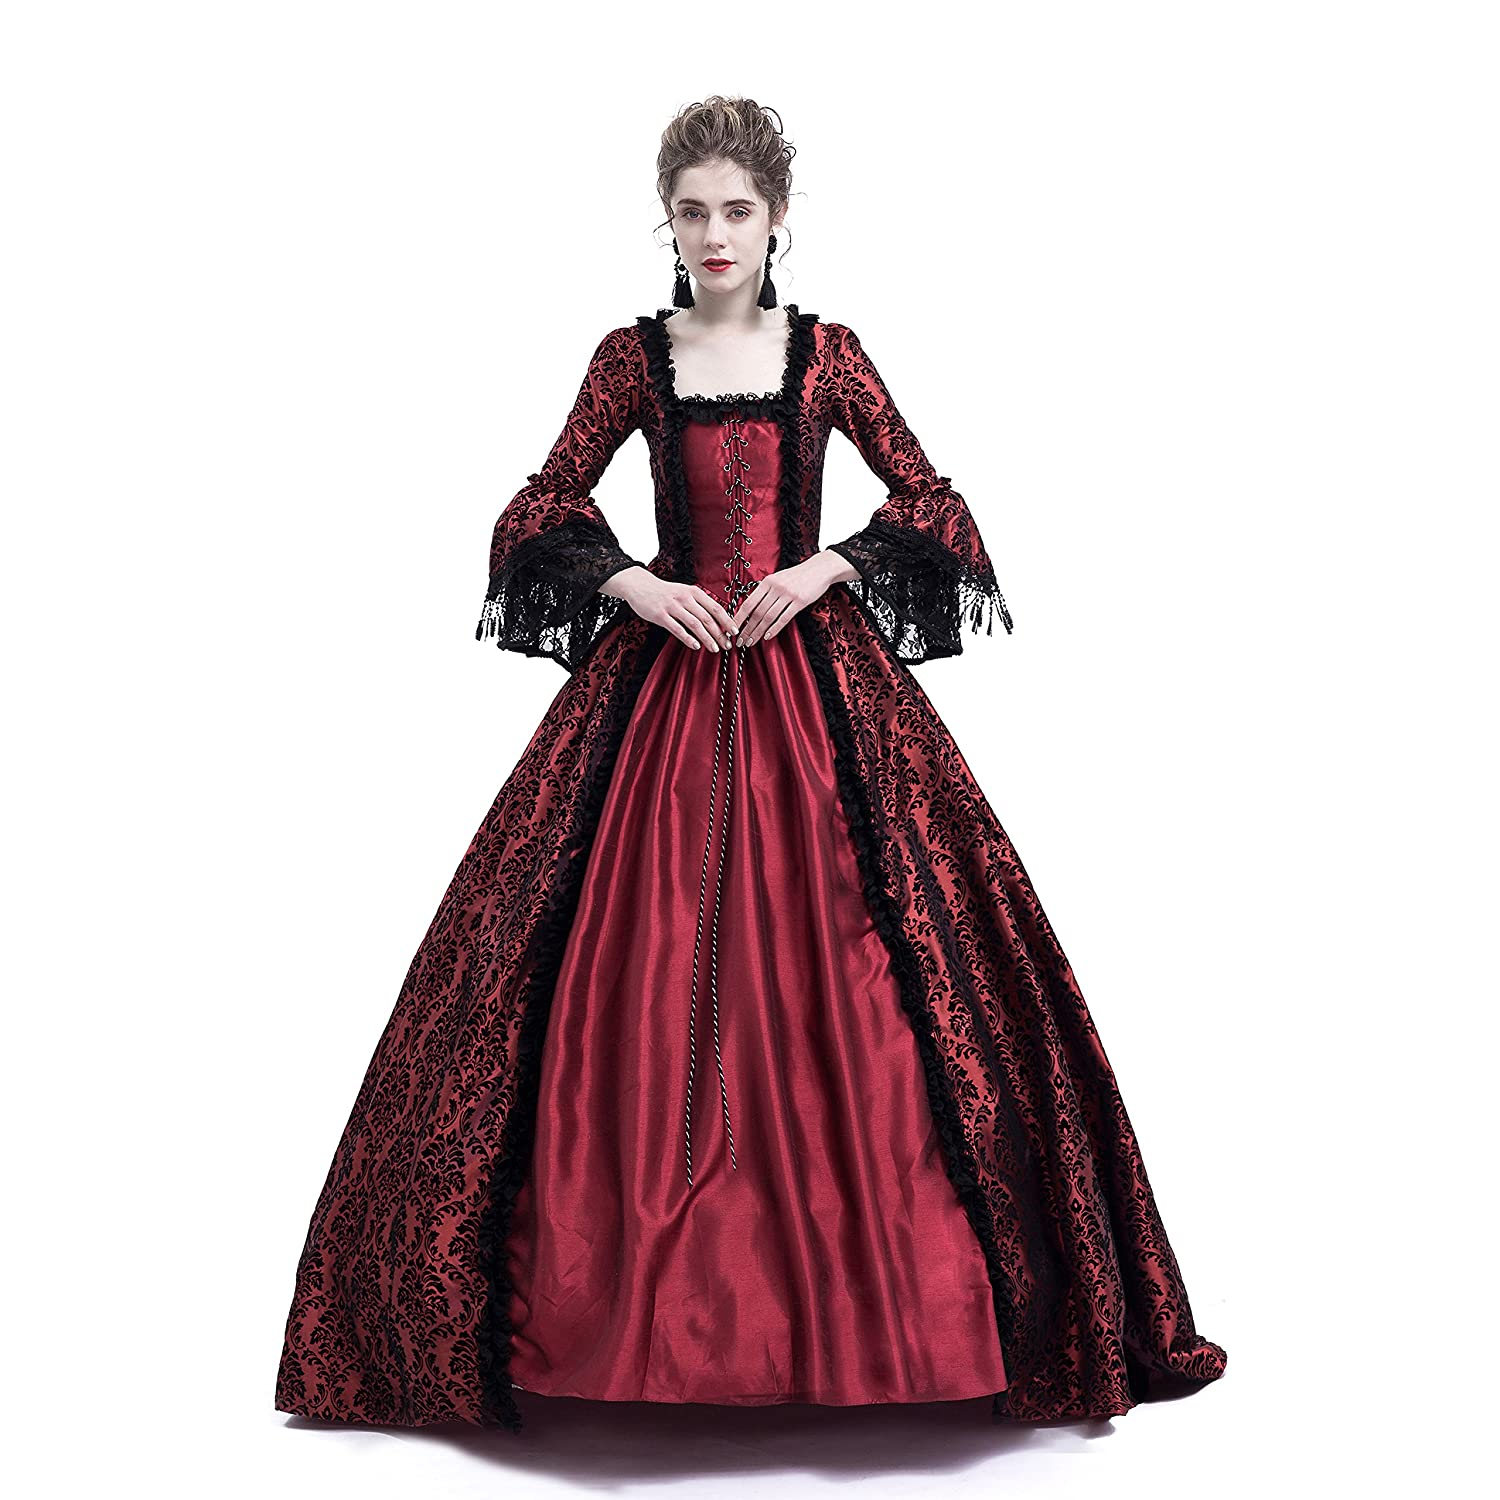 a796ac818062 Amazon.com: D-RoseBlooming Red Masked Masquerade Ball Gown Gothic Victorian  Costume Dress: Clothing